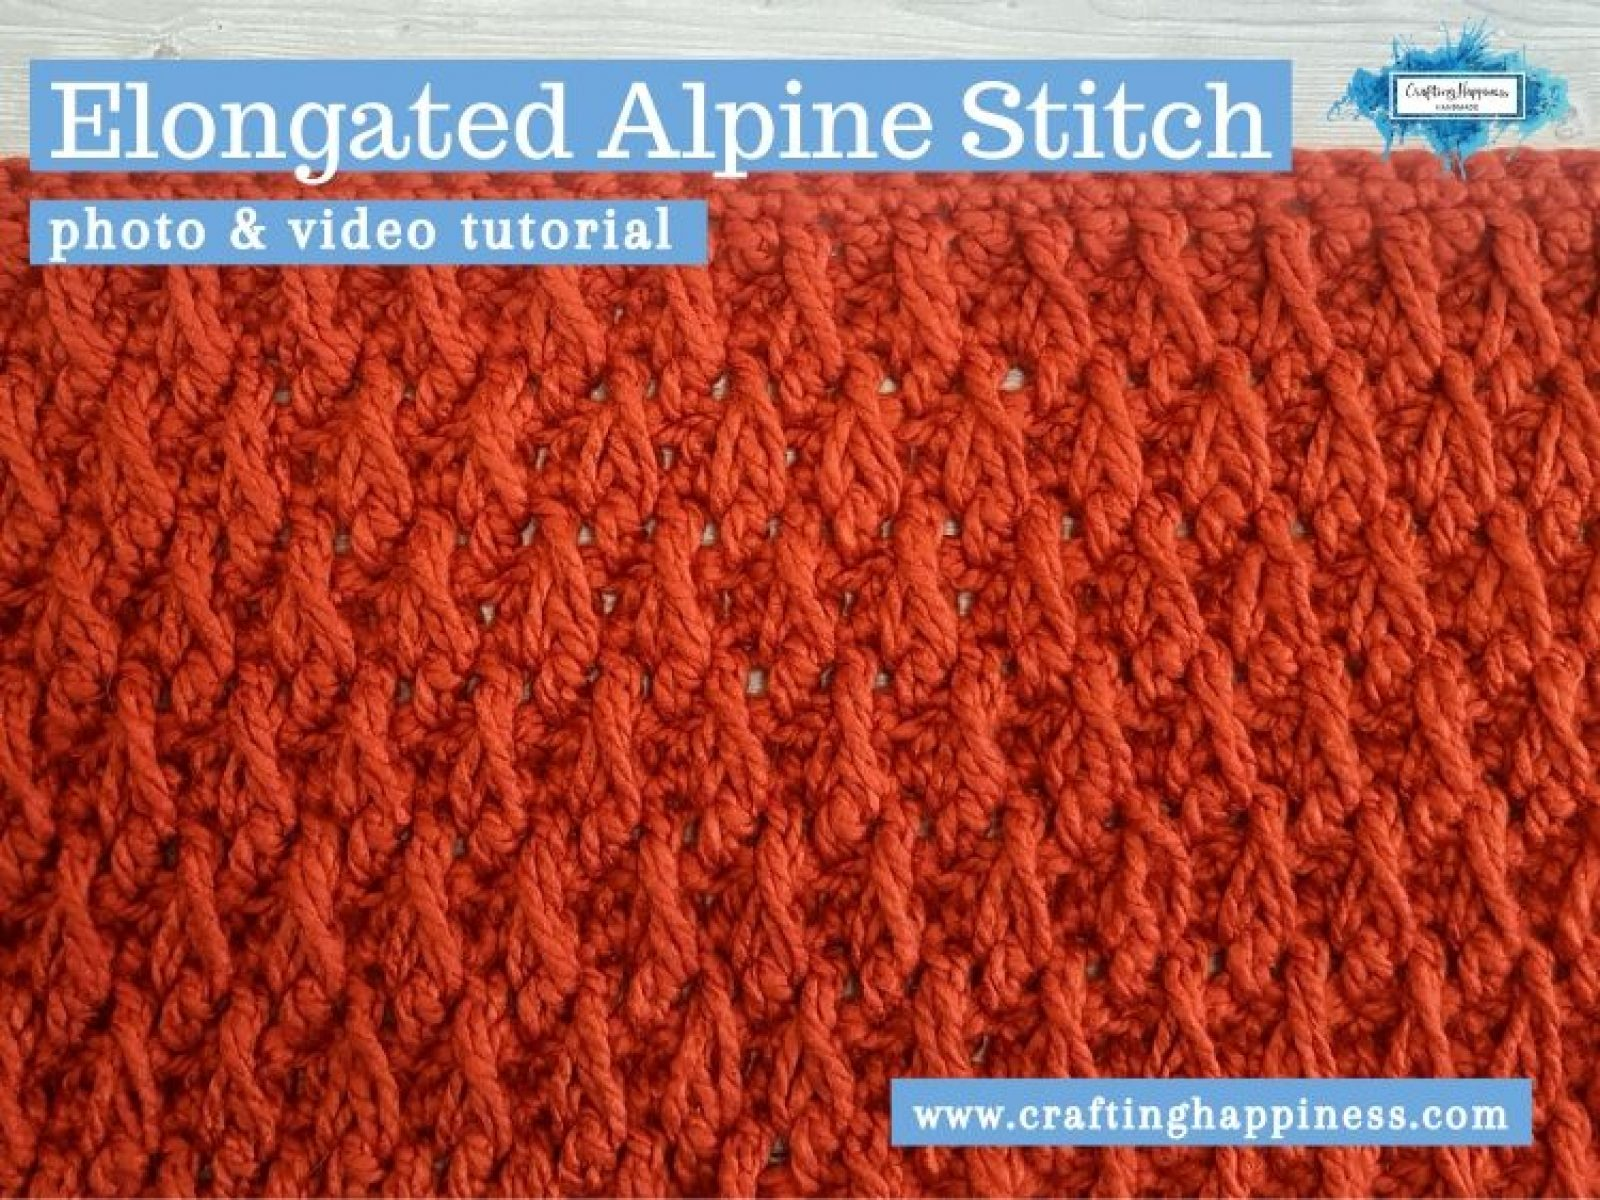 Elongated Alpine Stitch by Crafting Happiness FACEBOOK POSTER